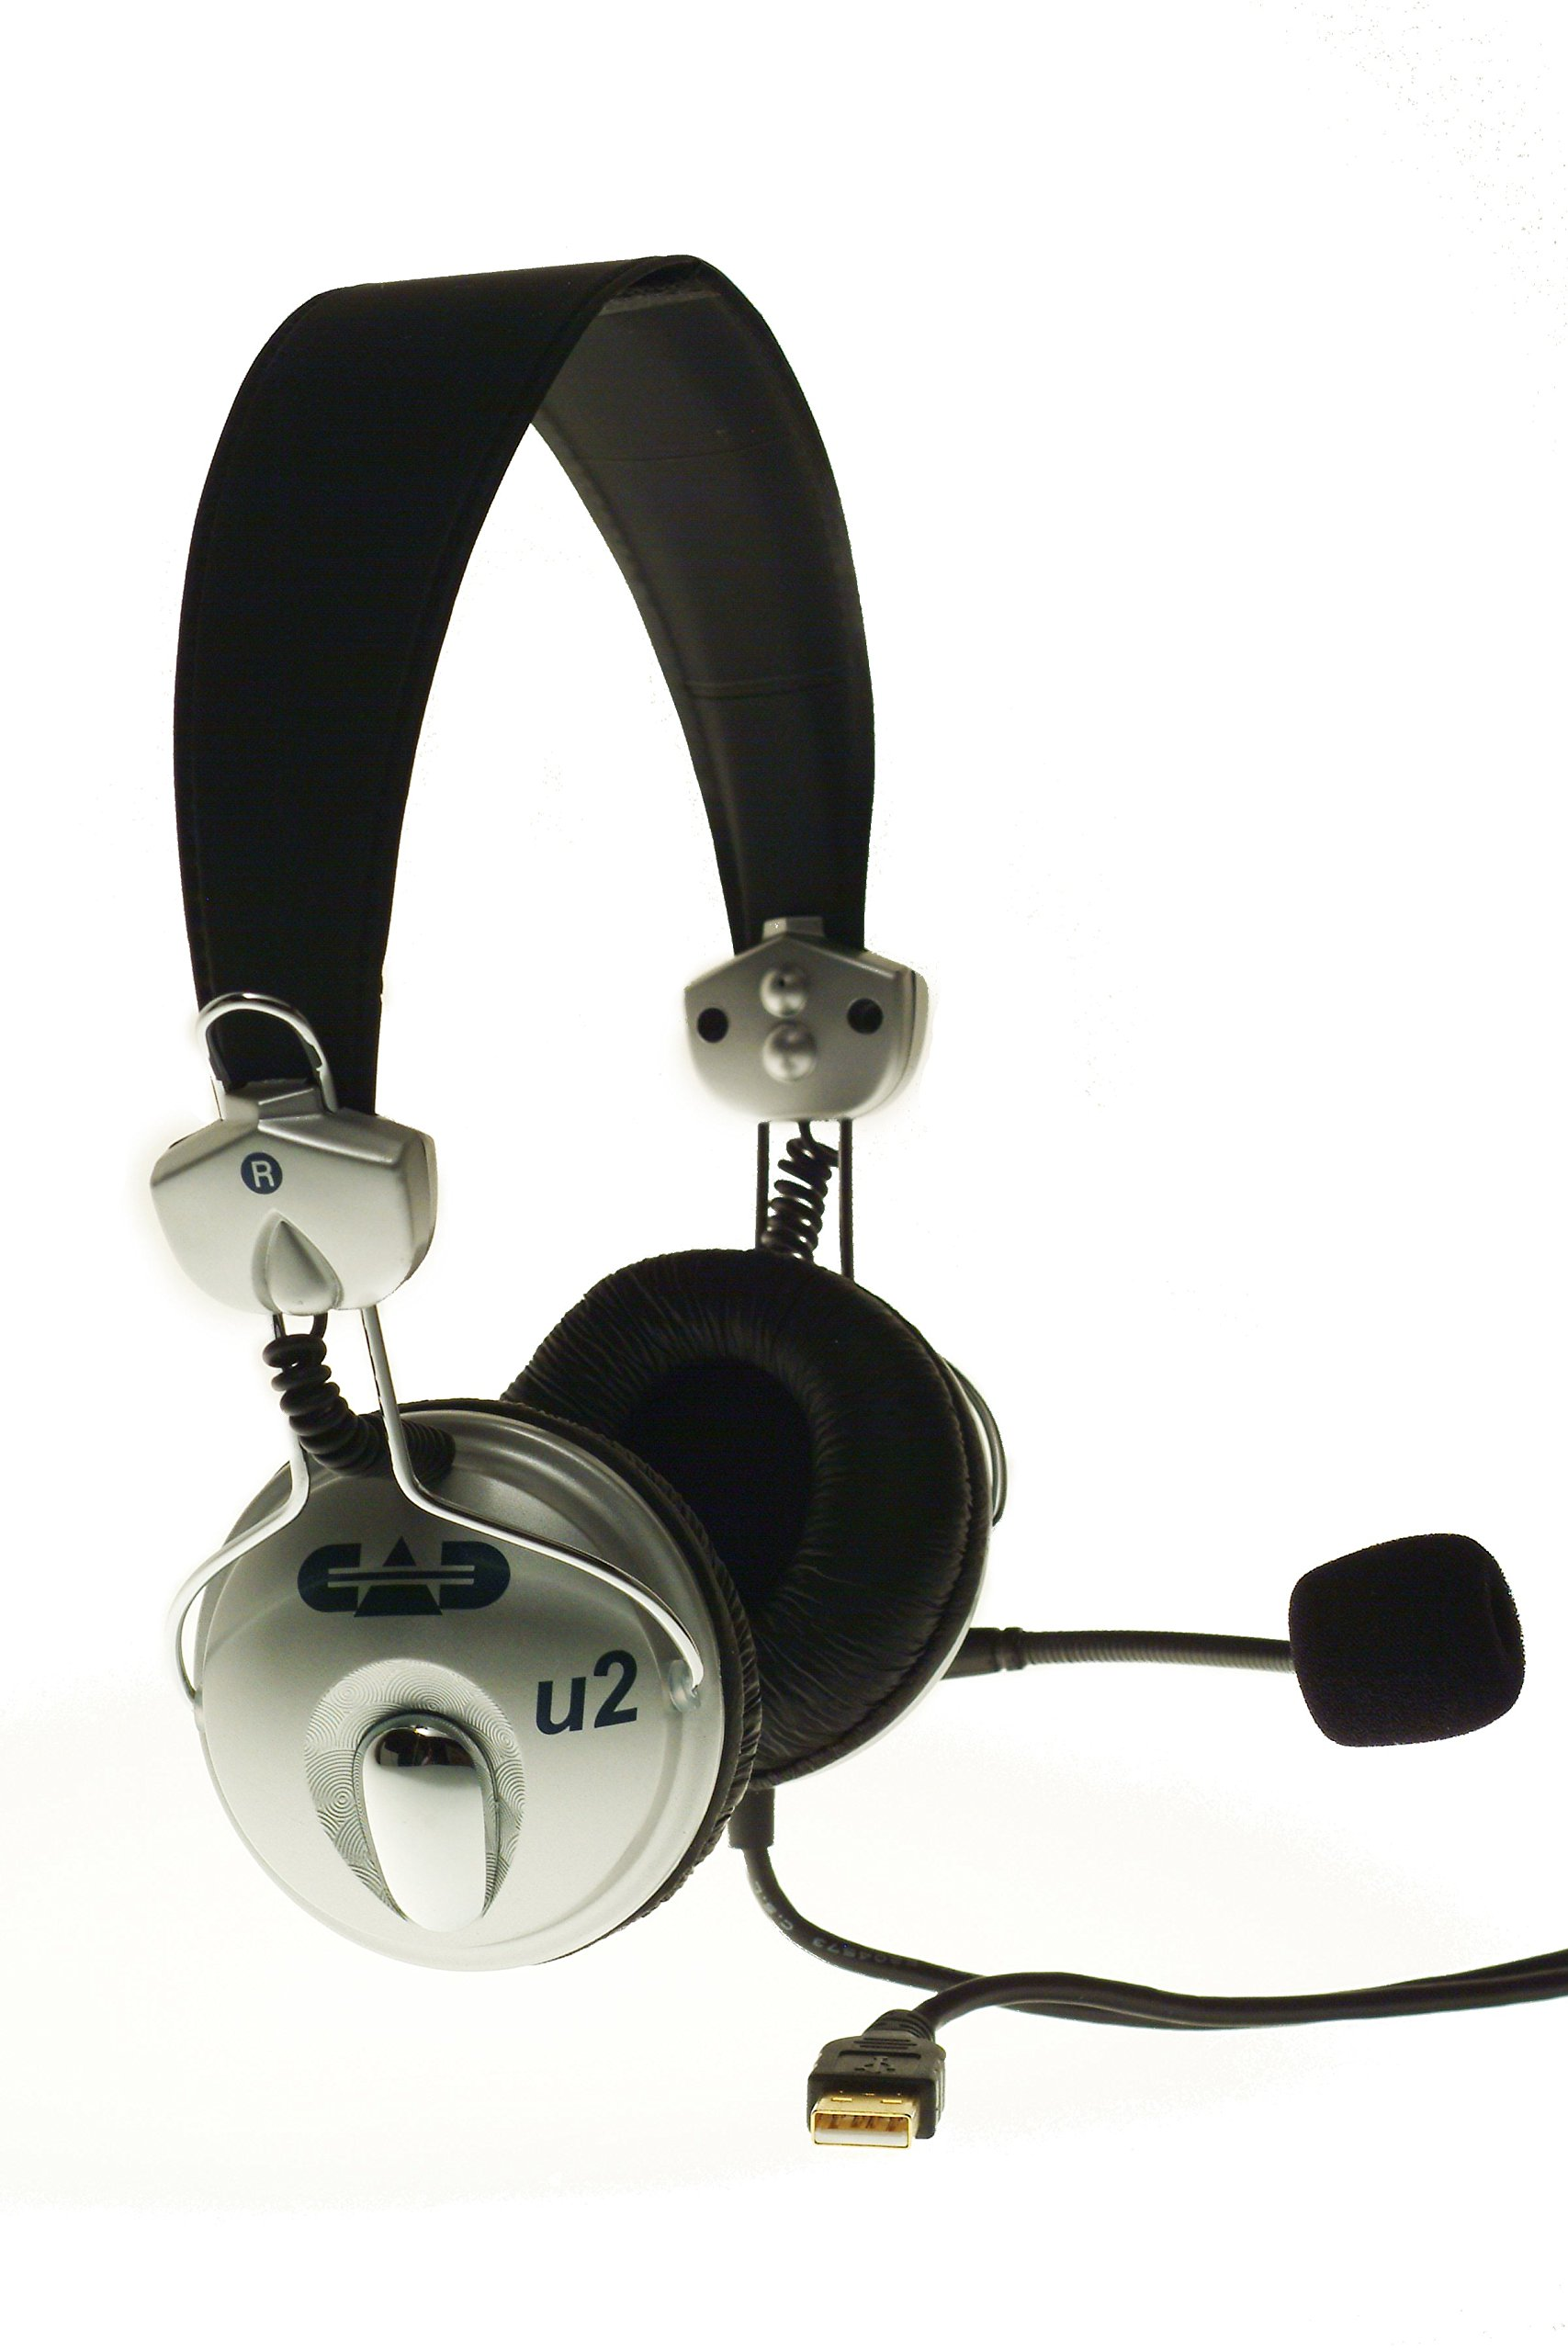 CAD Audio USB U2 Stereo Headphones with Cardioid Condenser Microphone by CAD Audio (Image #1)